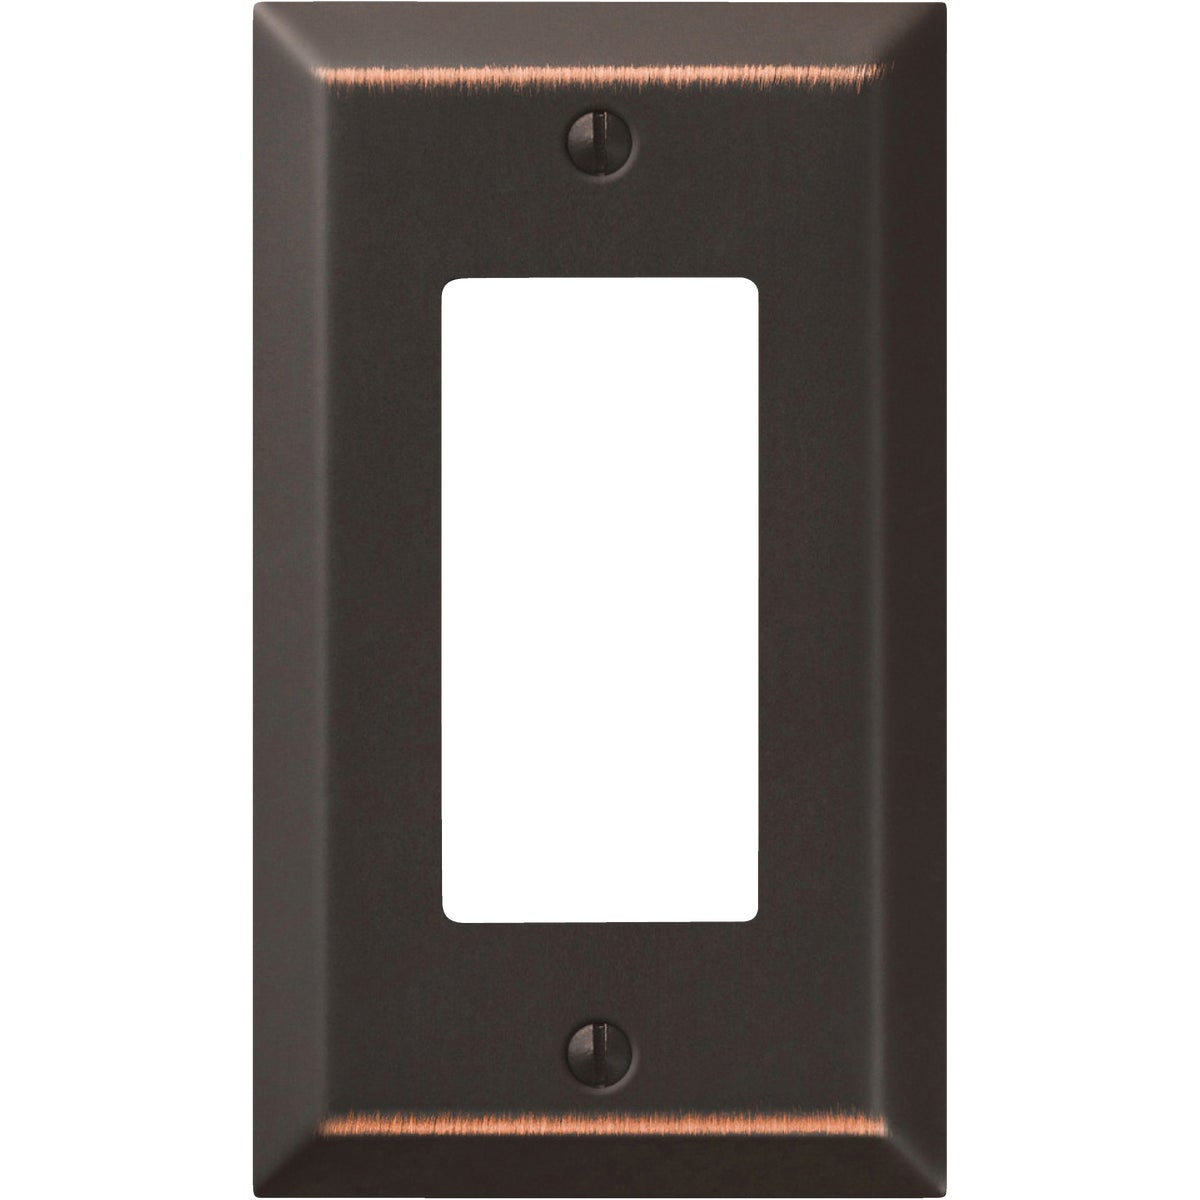 1RKR ABRZ WALLPLATE - 9AZ117 by Jackson Deerfield Mf